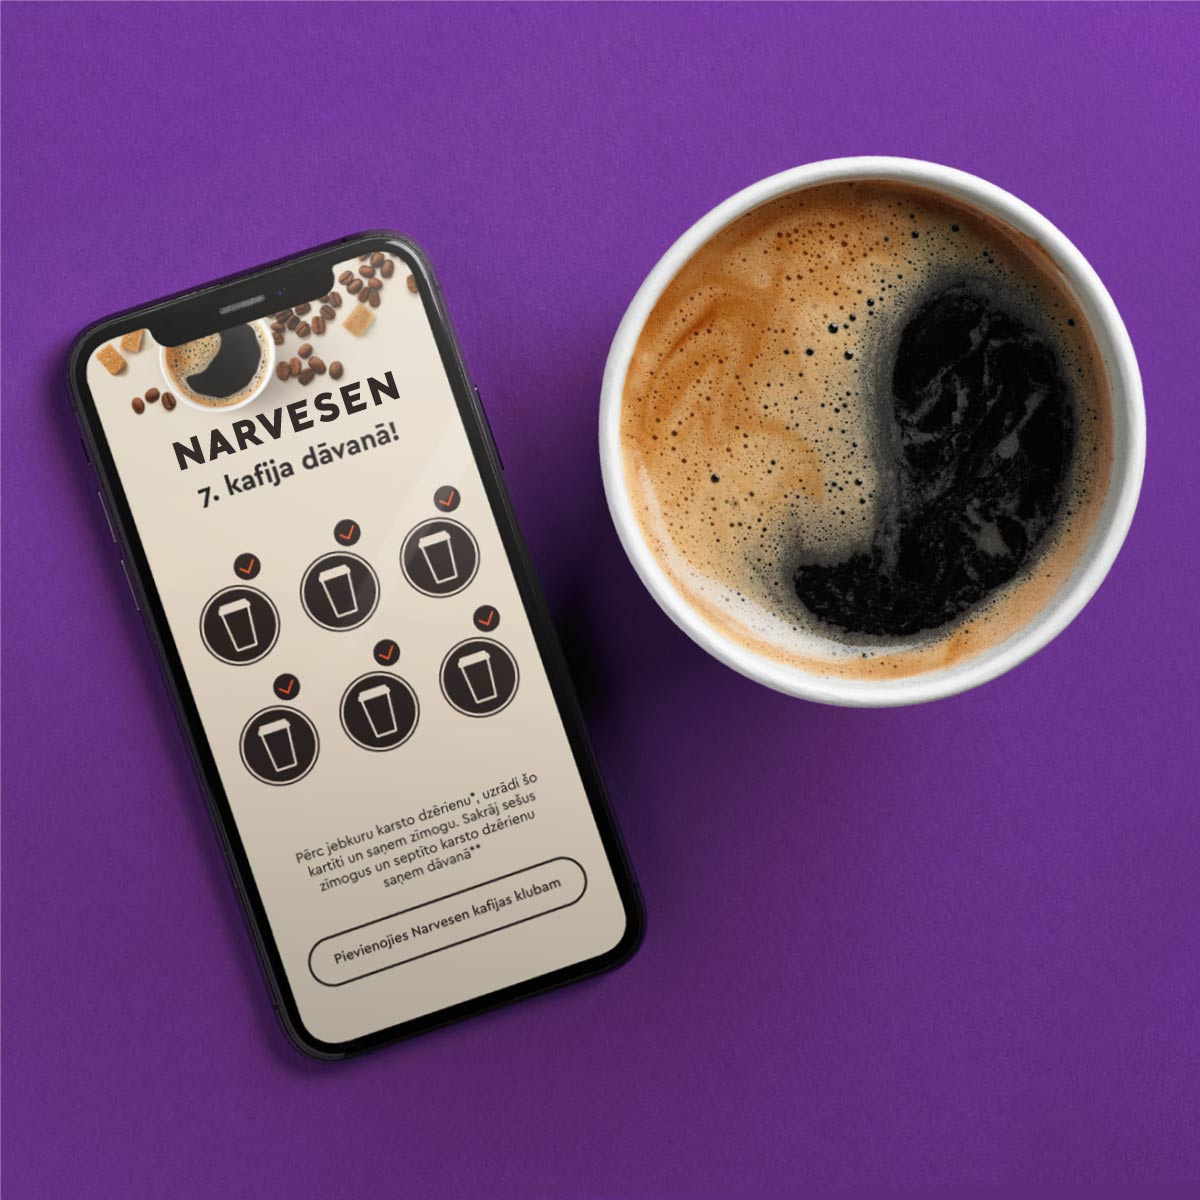 Collect Narvesen stamps in PINS app and get the 7th coffee for free! image